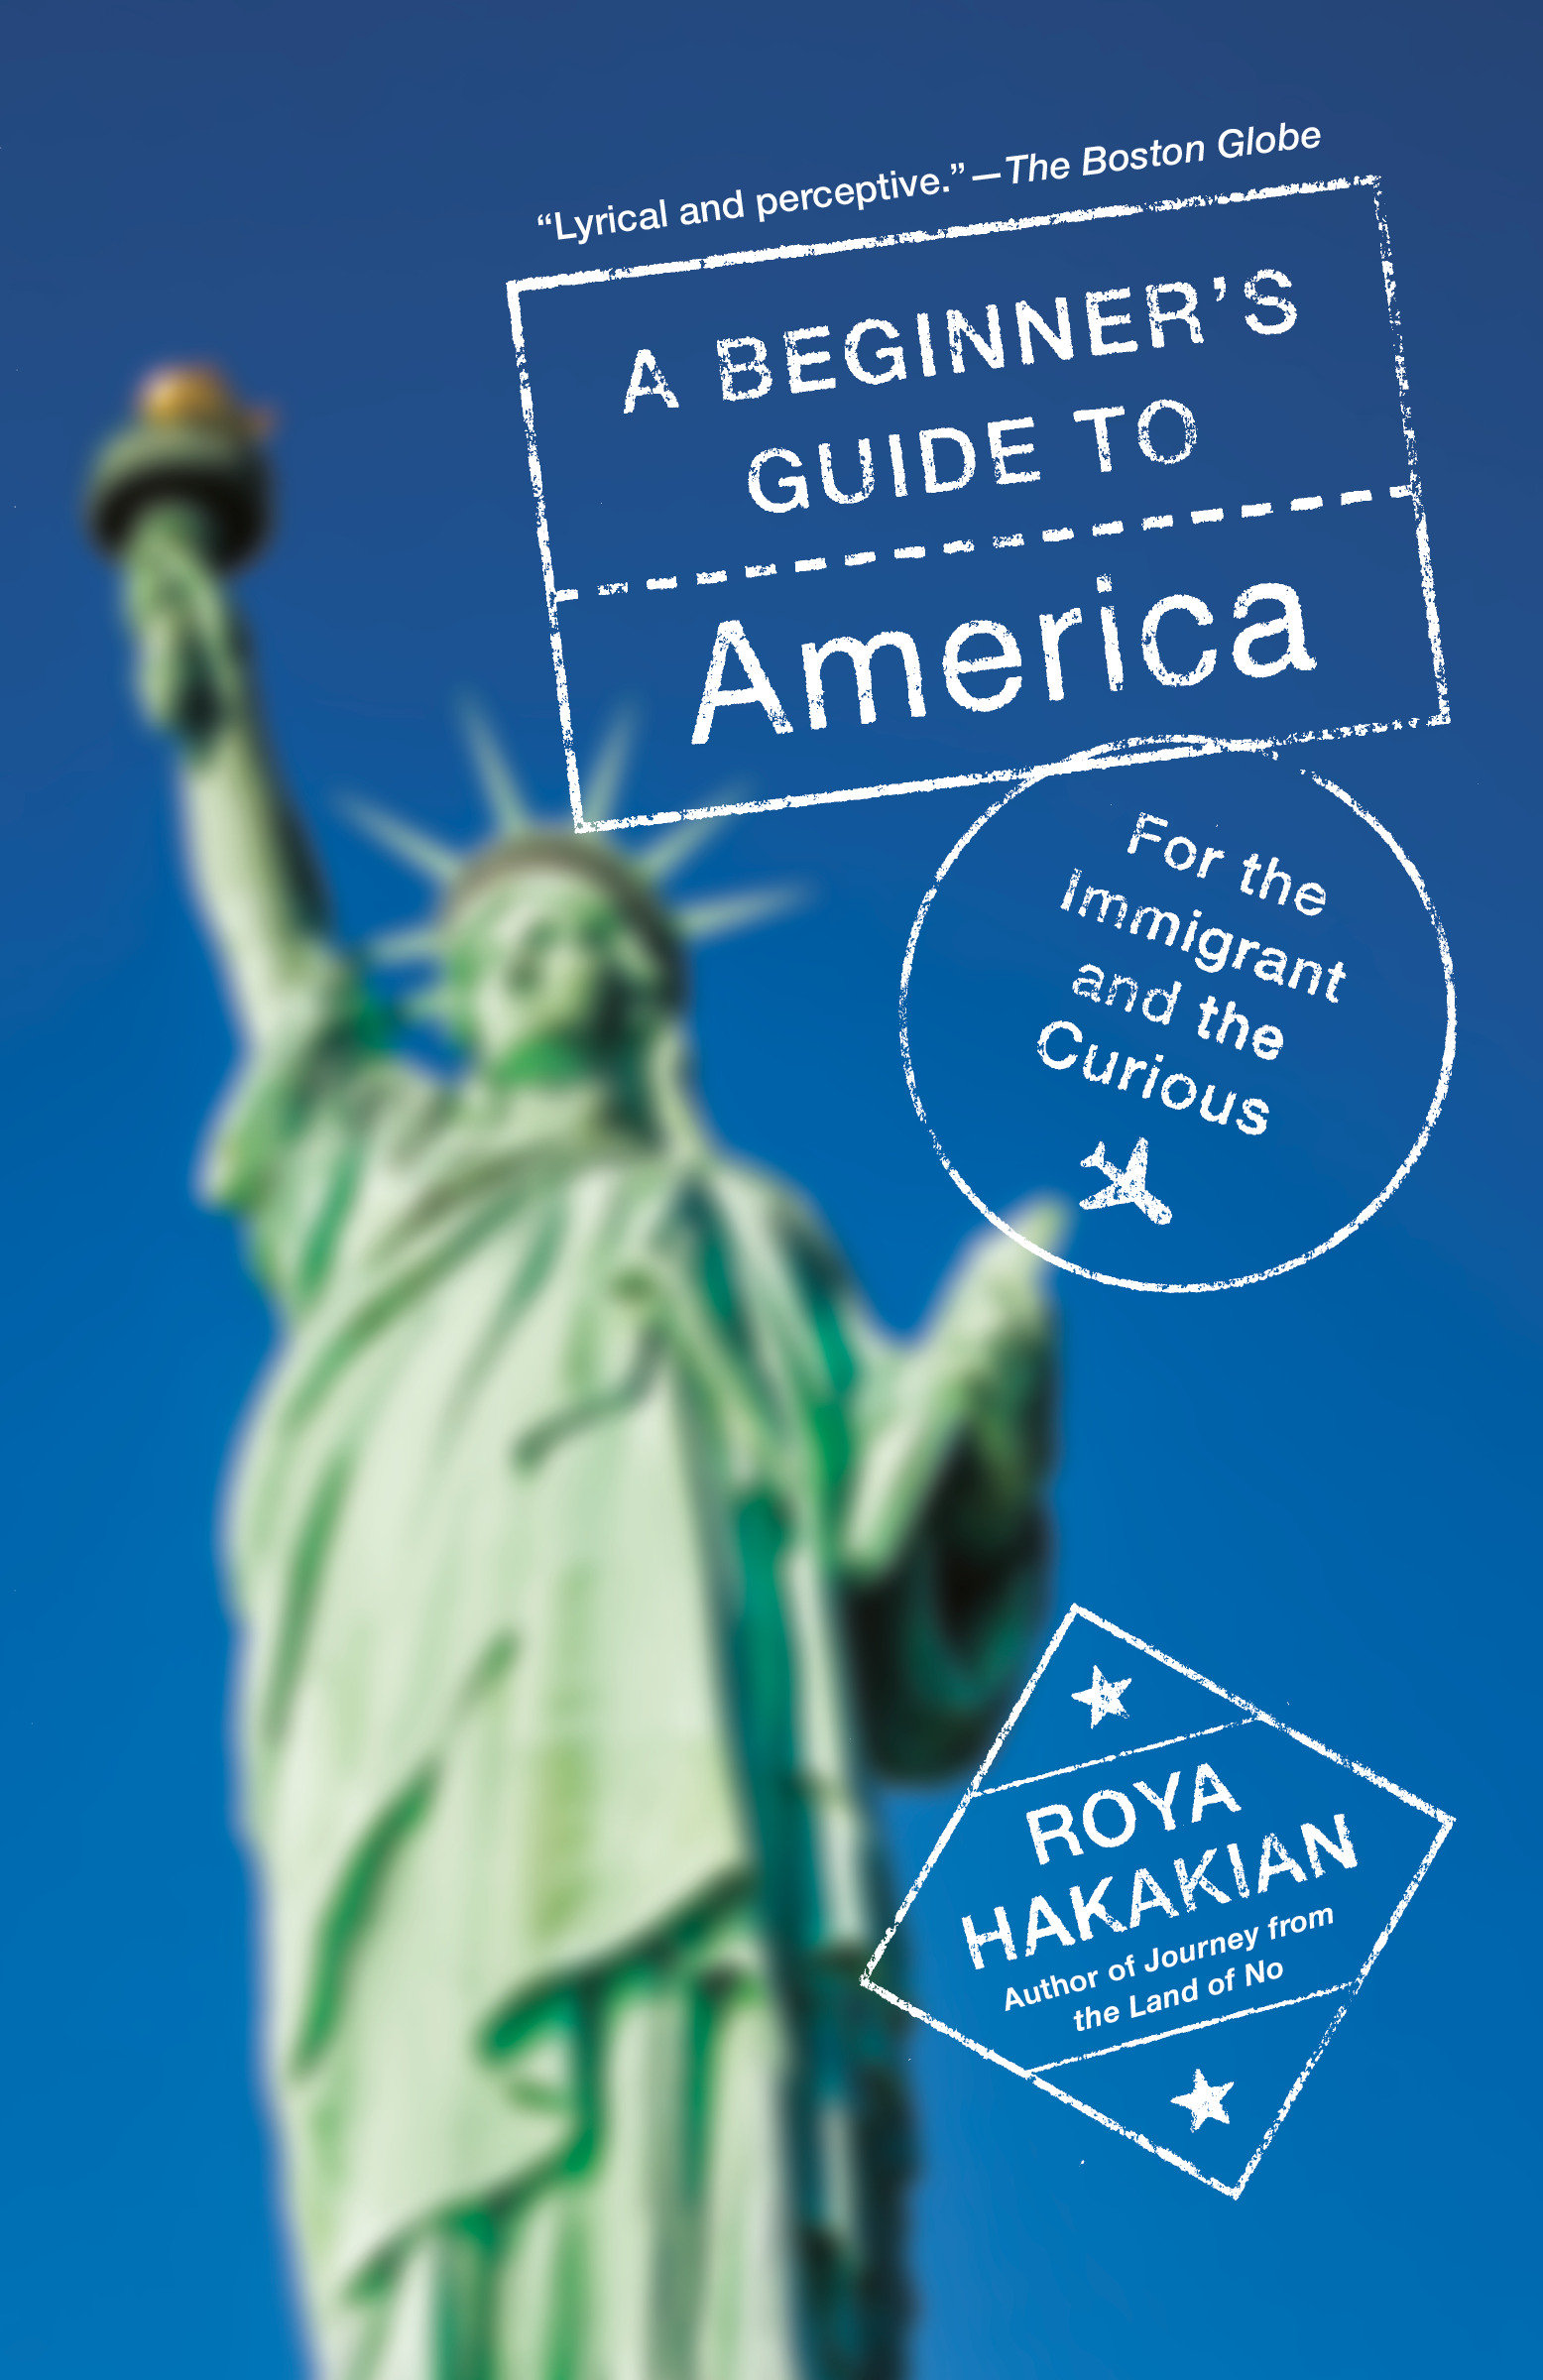 A Beginner's Guide to America For the Immigrant and the Curious